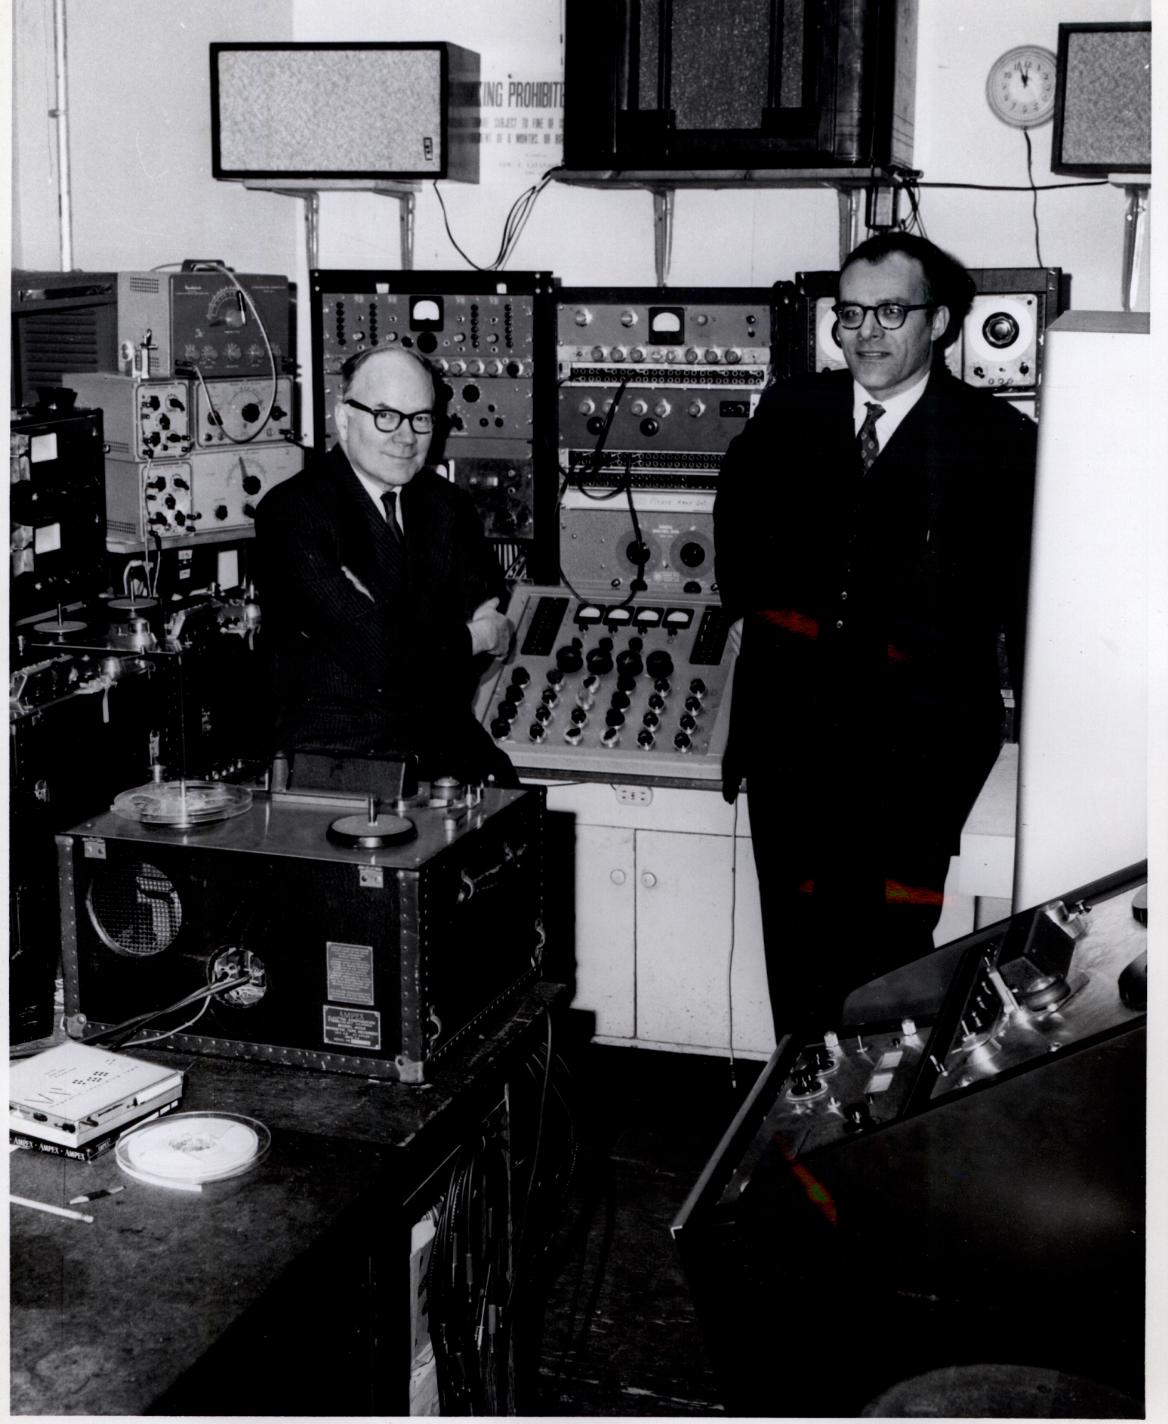 Otto Luening and Vladimir Ussachevsky in the Electronic Music Center